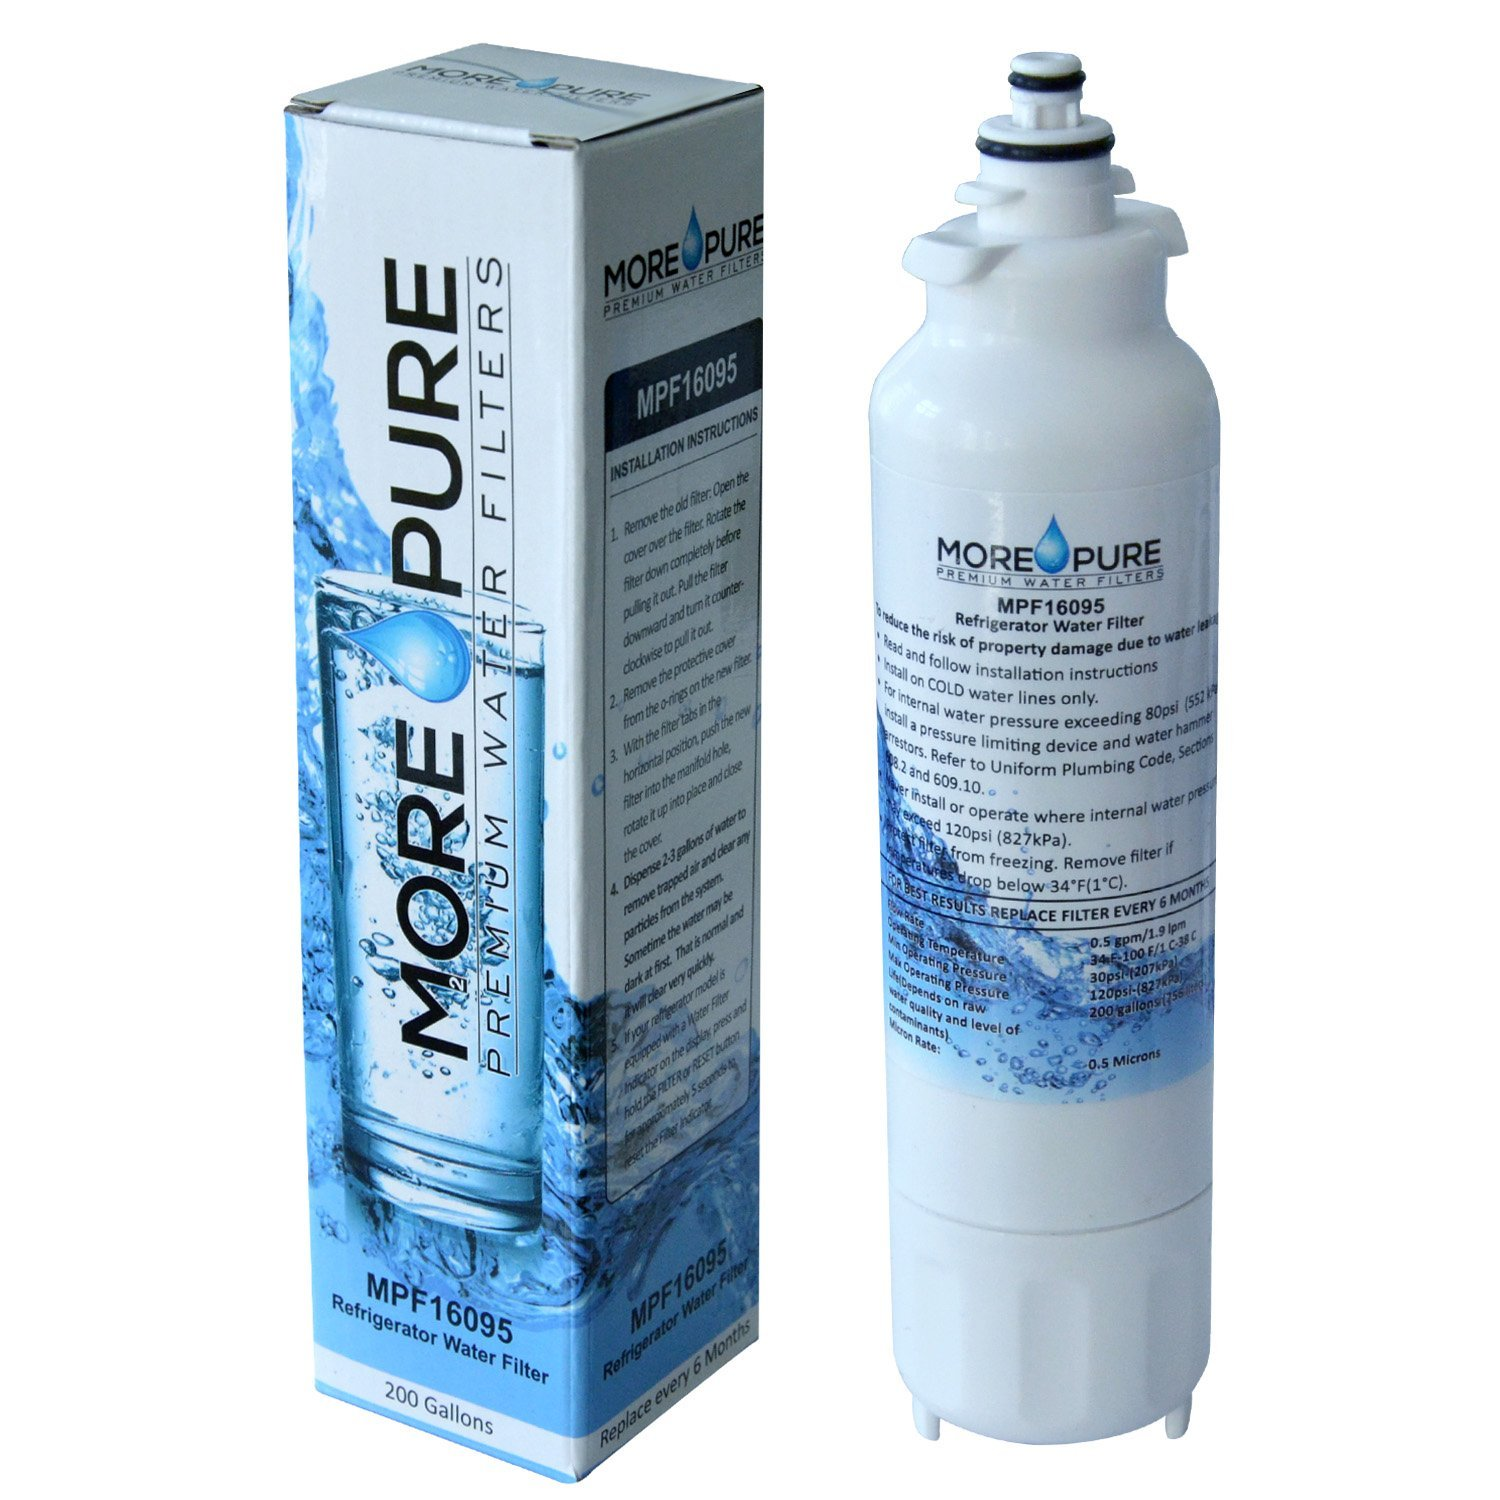 MORE Pure MPF16095 Refrigerator Water Filter Compatible with LG LT800P and Kenmore 46-9460 by MORE Pure Filters (Image #5)